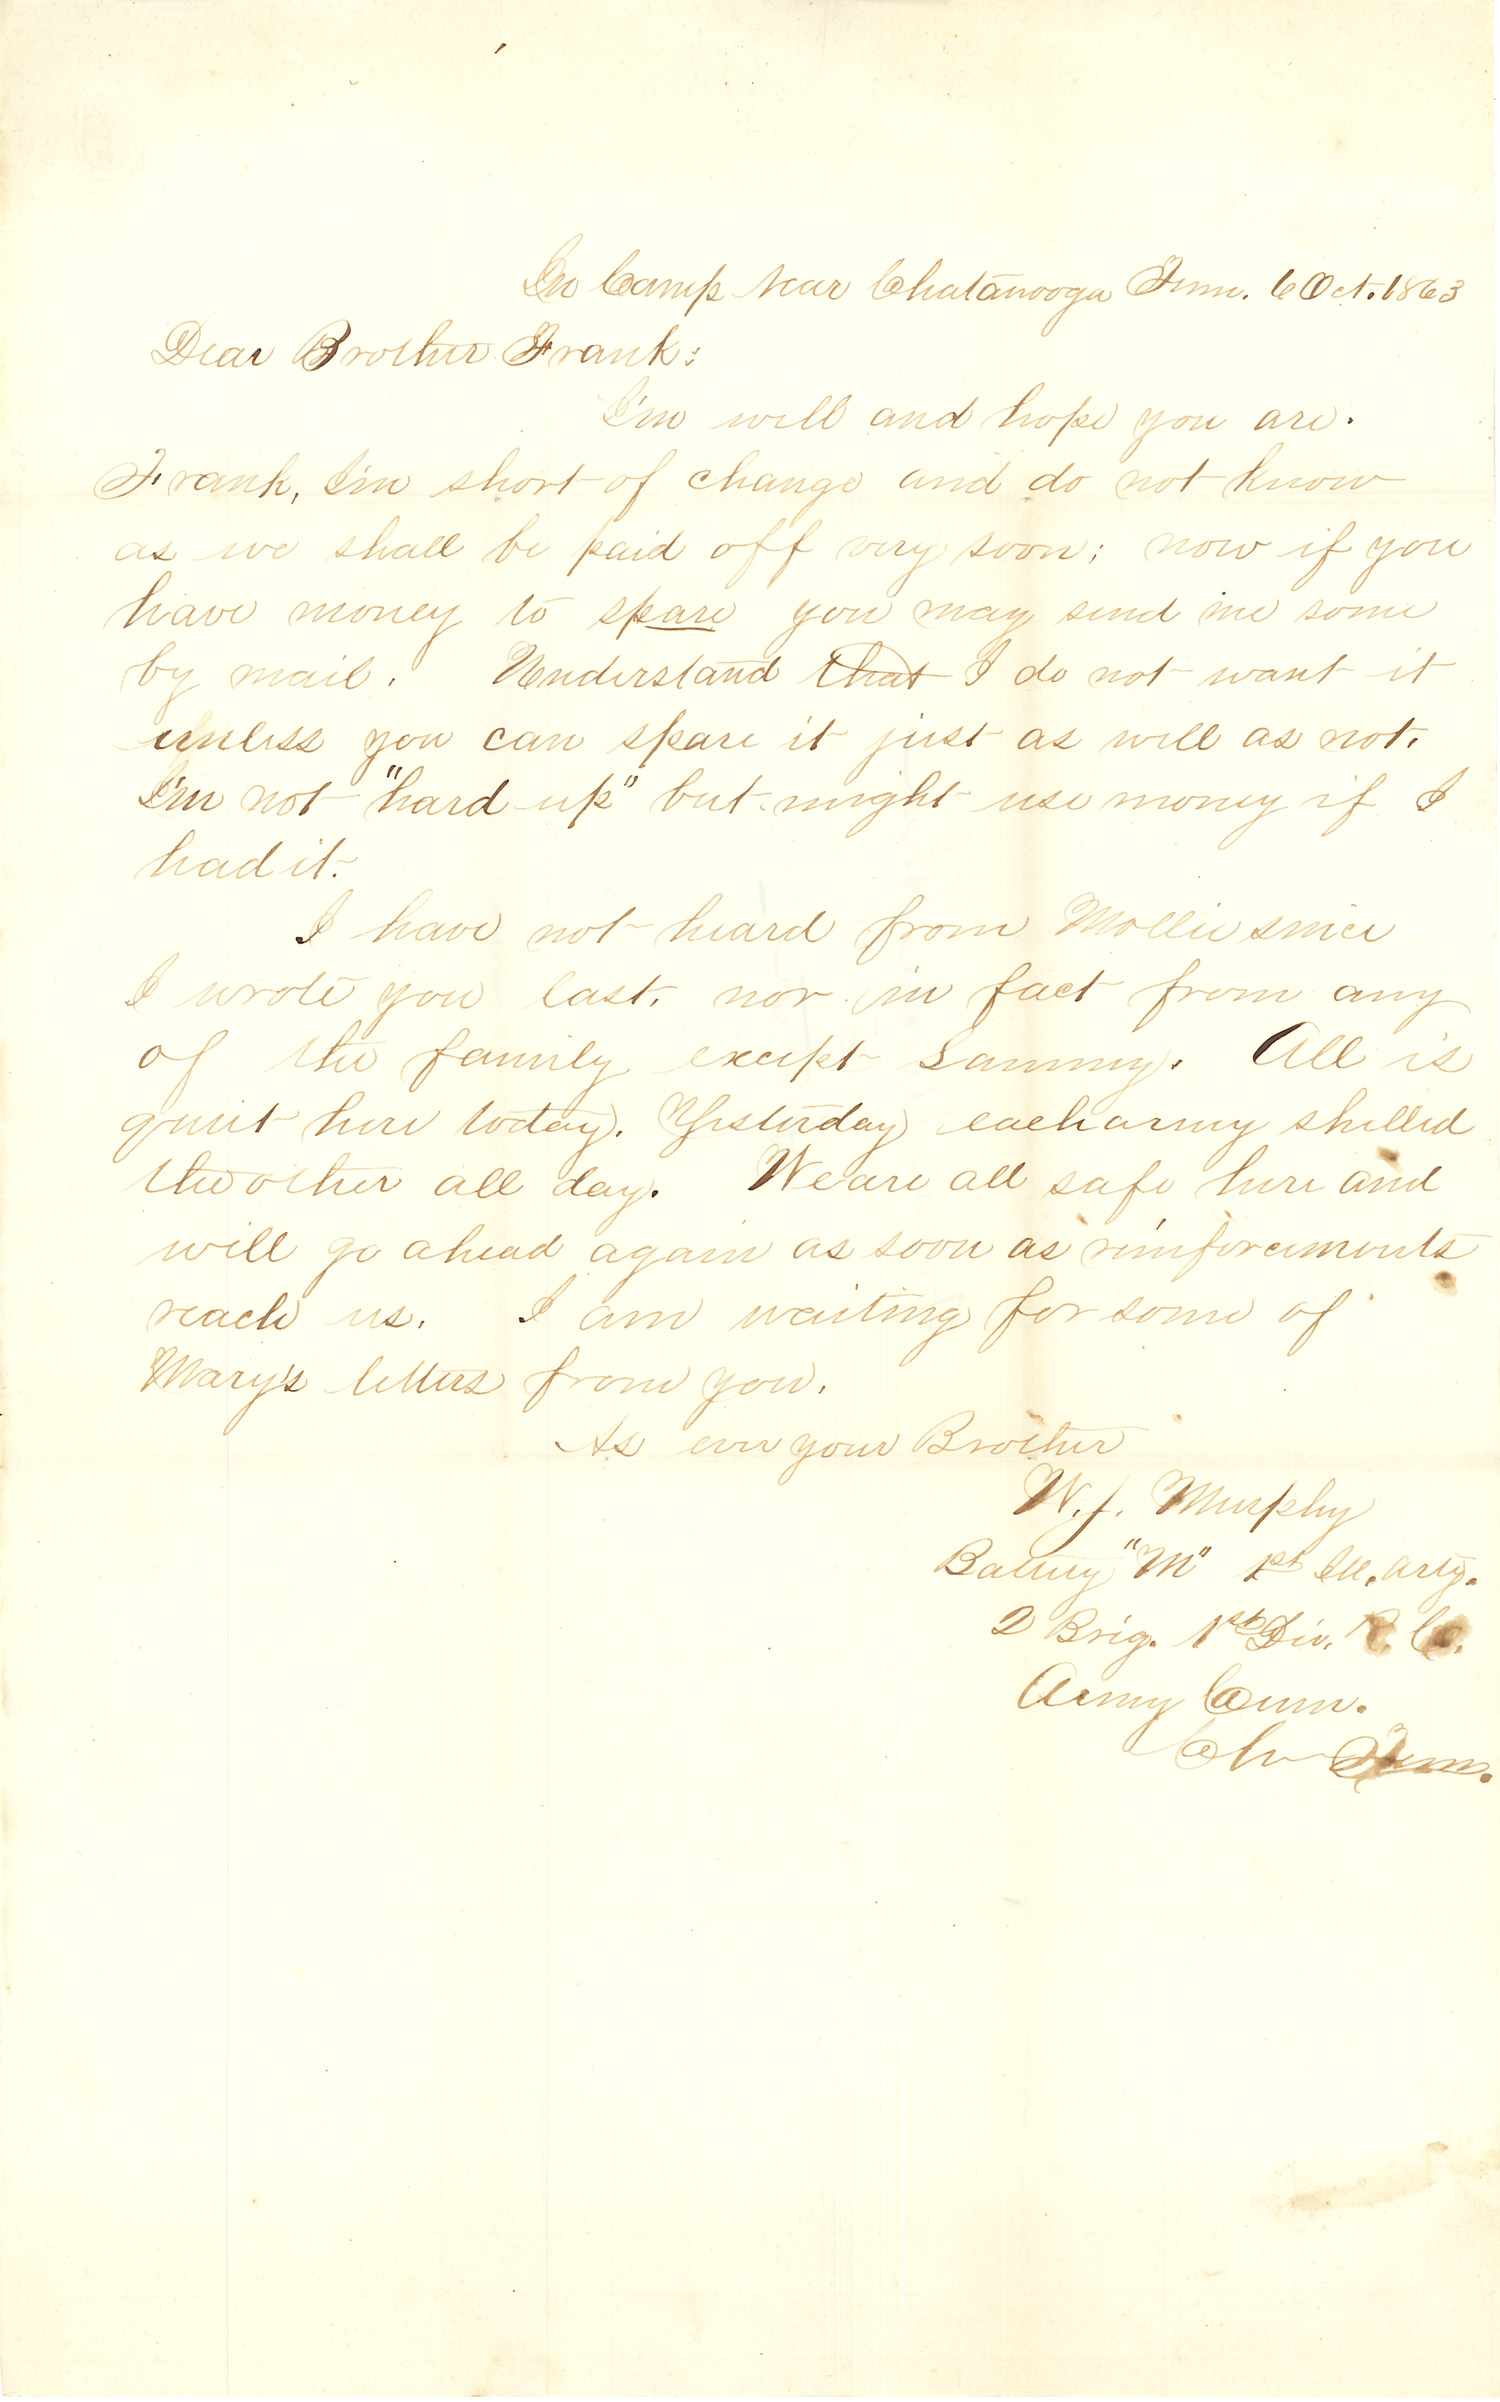 Joseph Culver Letter, October 6, 1863, Letter 2, Page 1